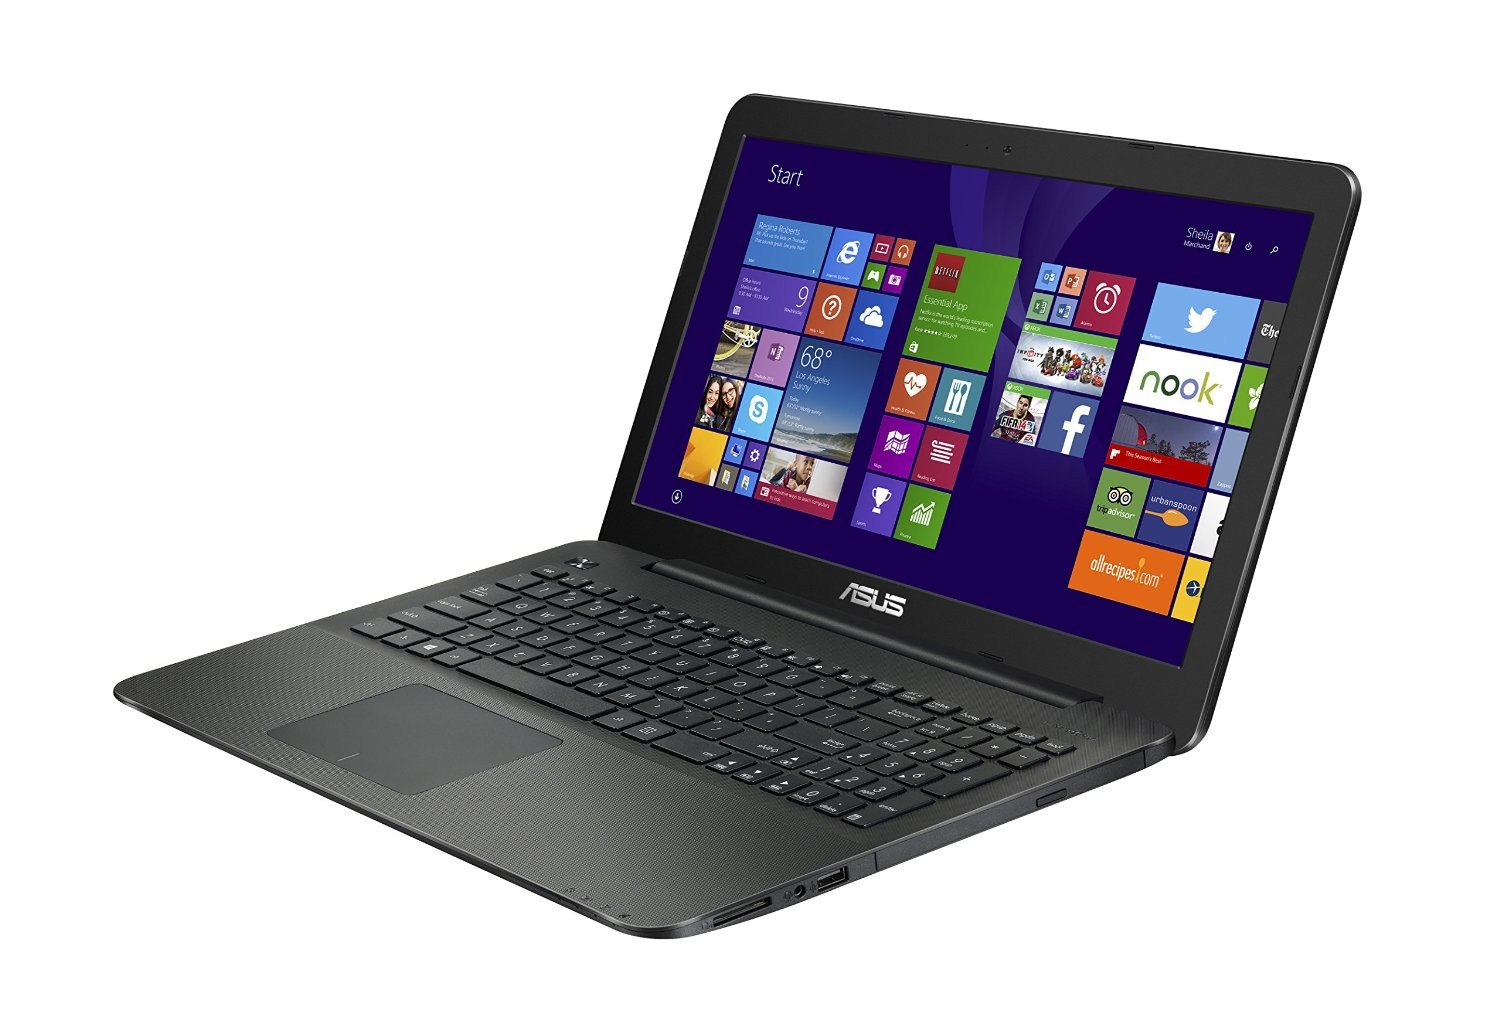 Asus x554l drivers windows 7